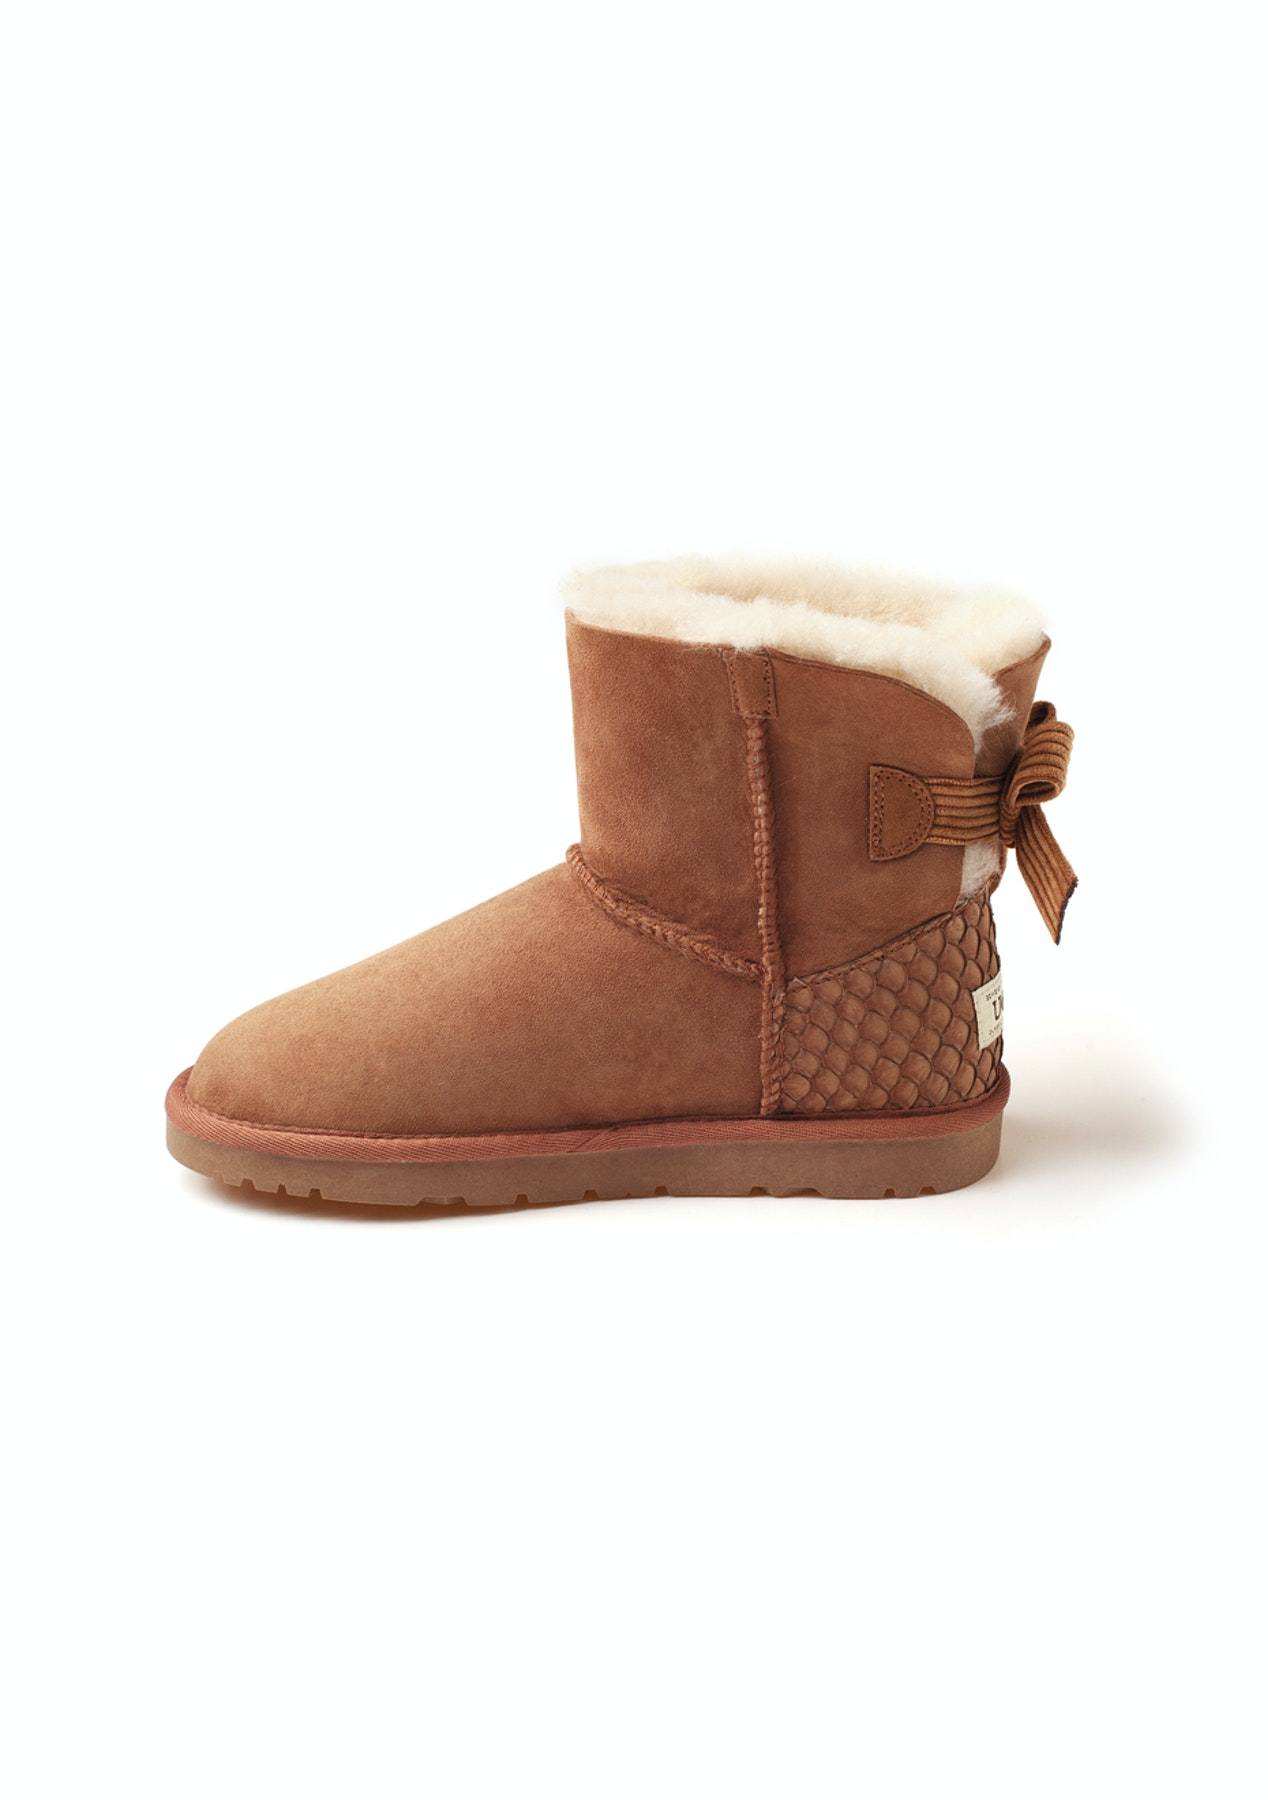 9f4b76a1faa27 Ozwear - Ugg Ugg One Bailey Bow Corduroy Boots (Scale-Embossed Heel Pop)  (Water Resistant) - Chestnut - Ozwear Uggs up to 58% - Onceit